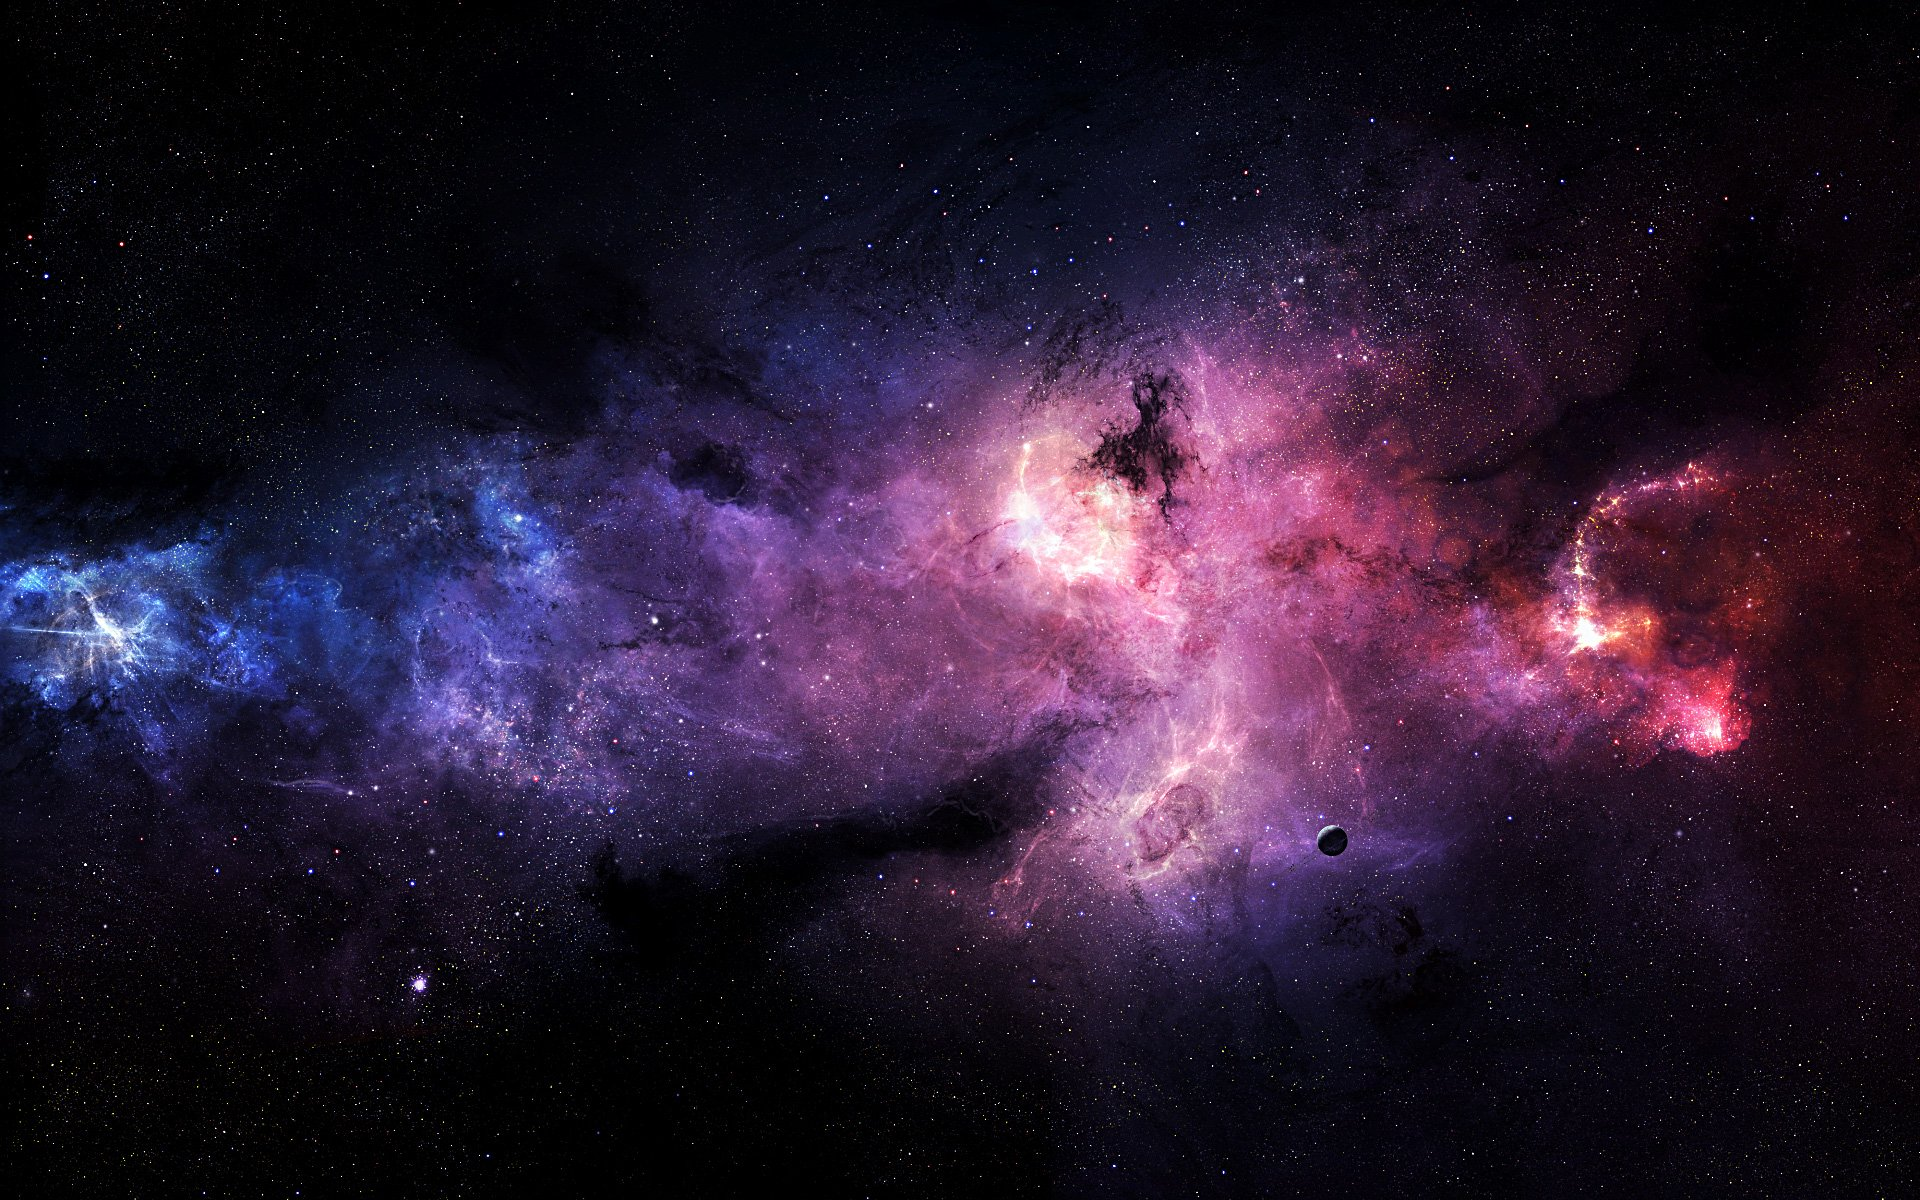 Purple Outer Space Wallpaper 19201200 20809 HD Wallpaper Res 1920x1200